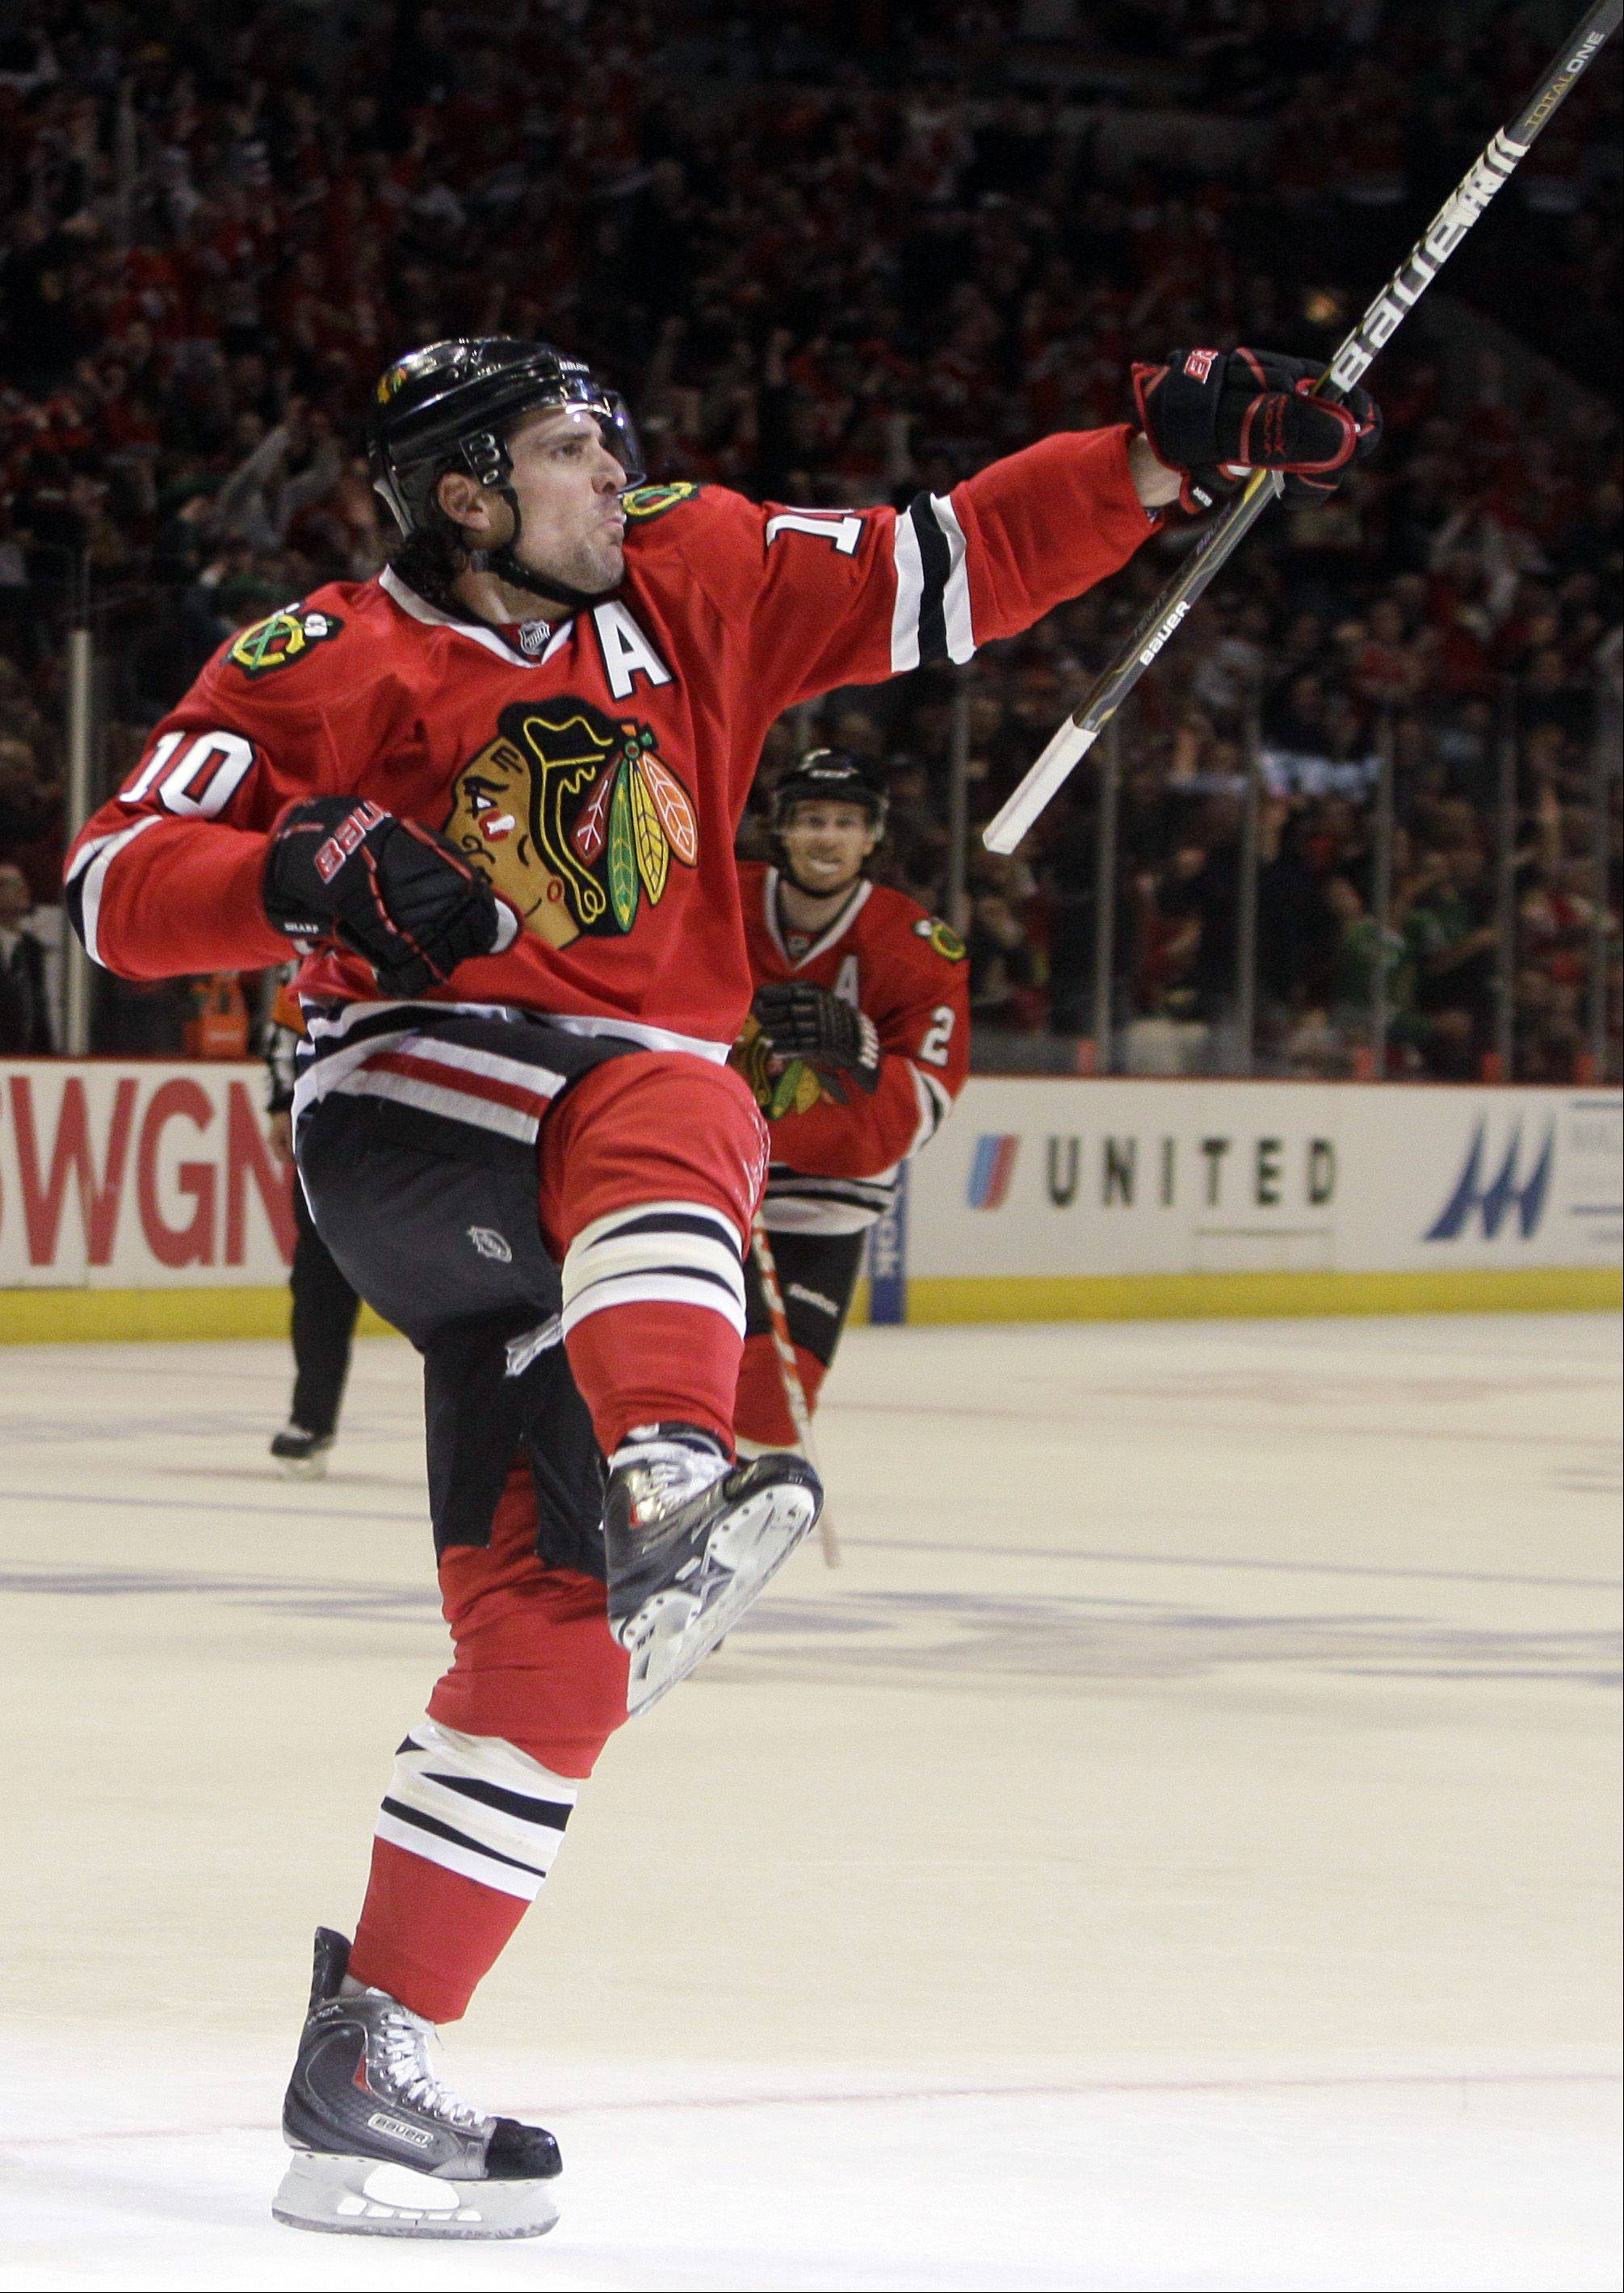 Patrick Sharp didn't want to leave Chicago, and the Blackhawks sealed the deal with a five-year contract extension worth $29.5 million to keep him off the NHL market.